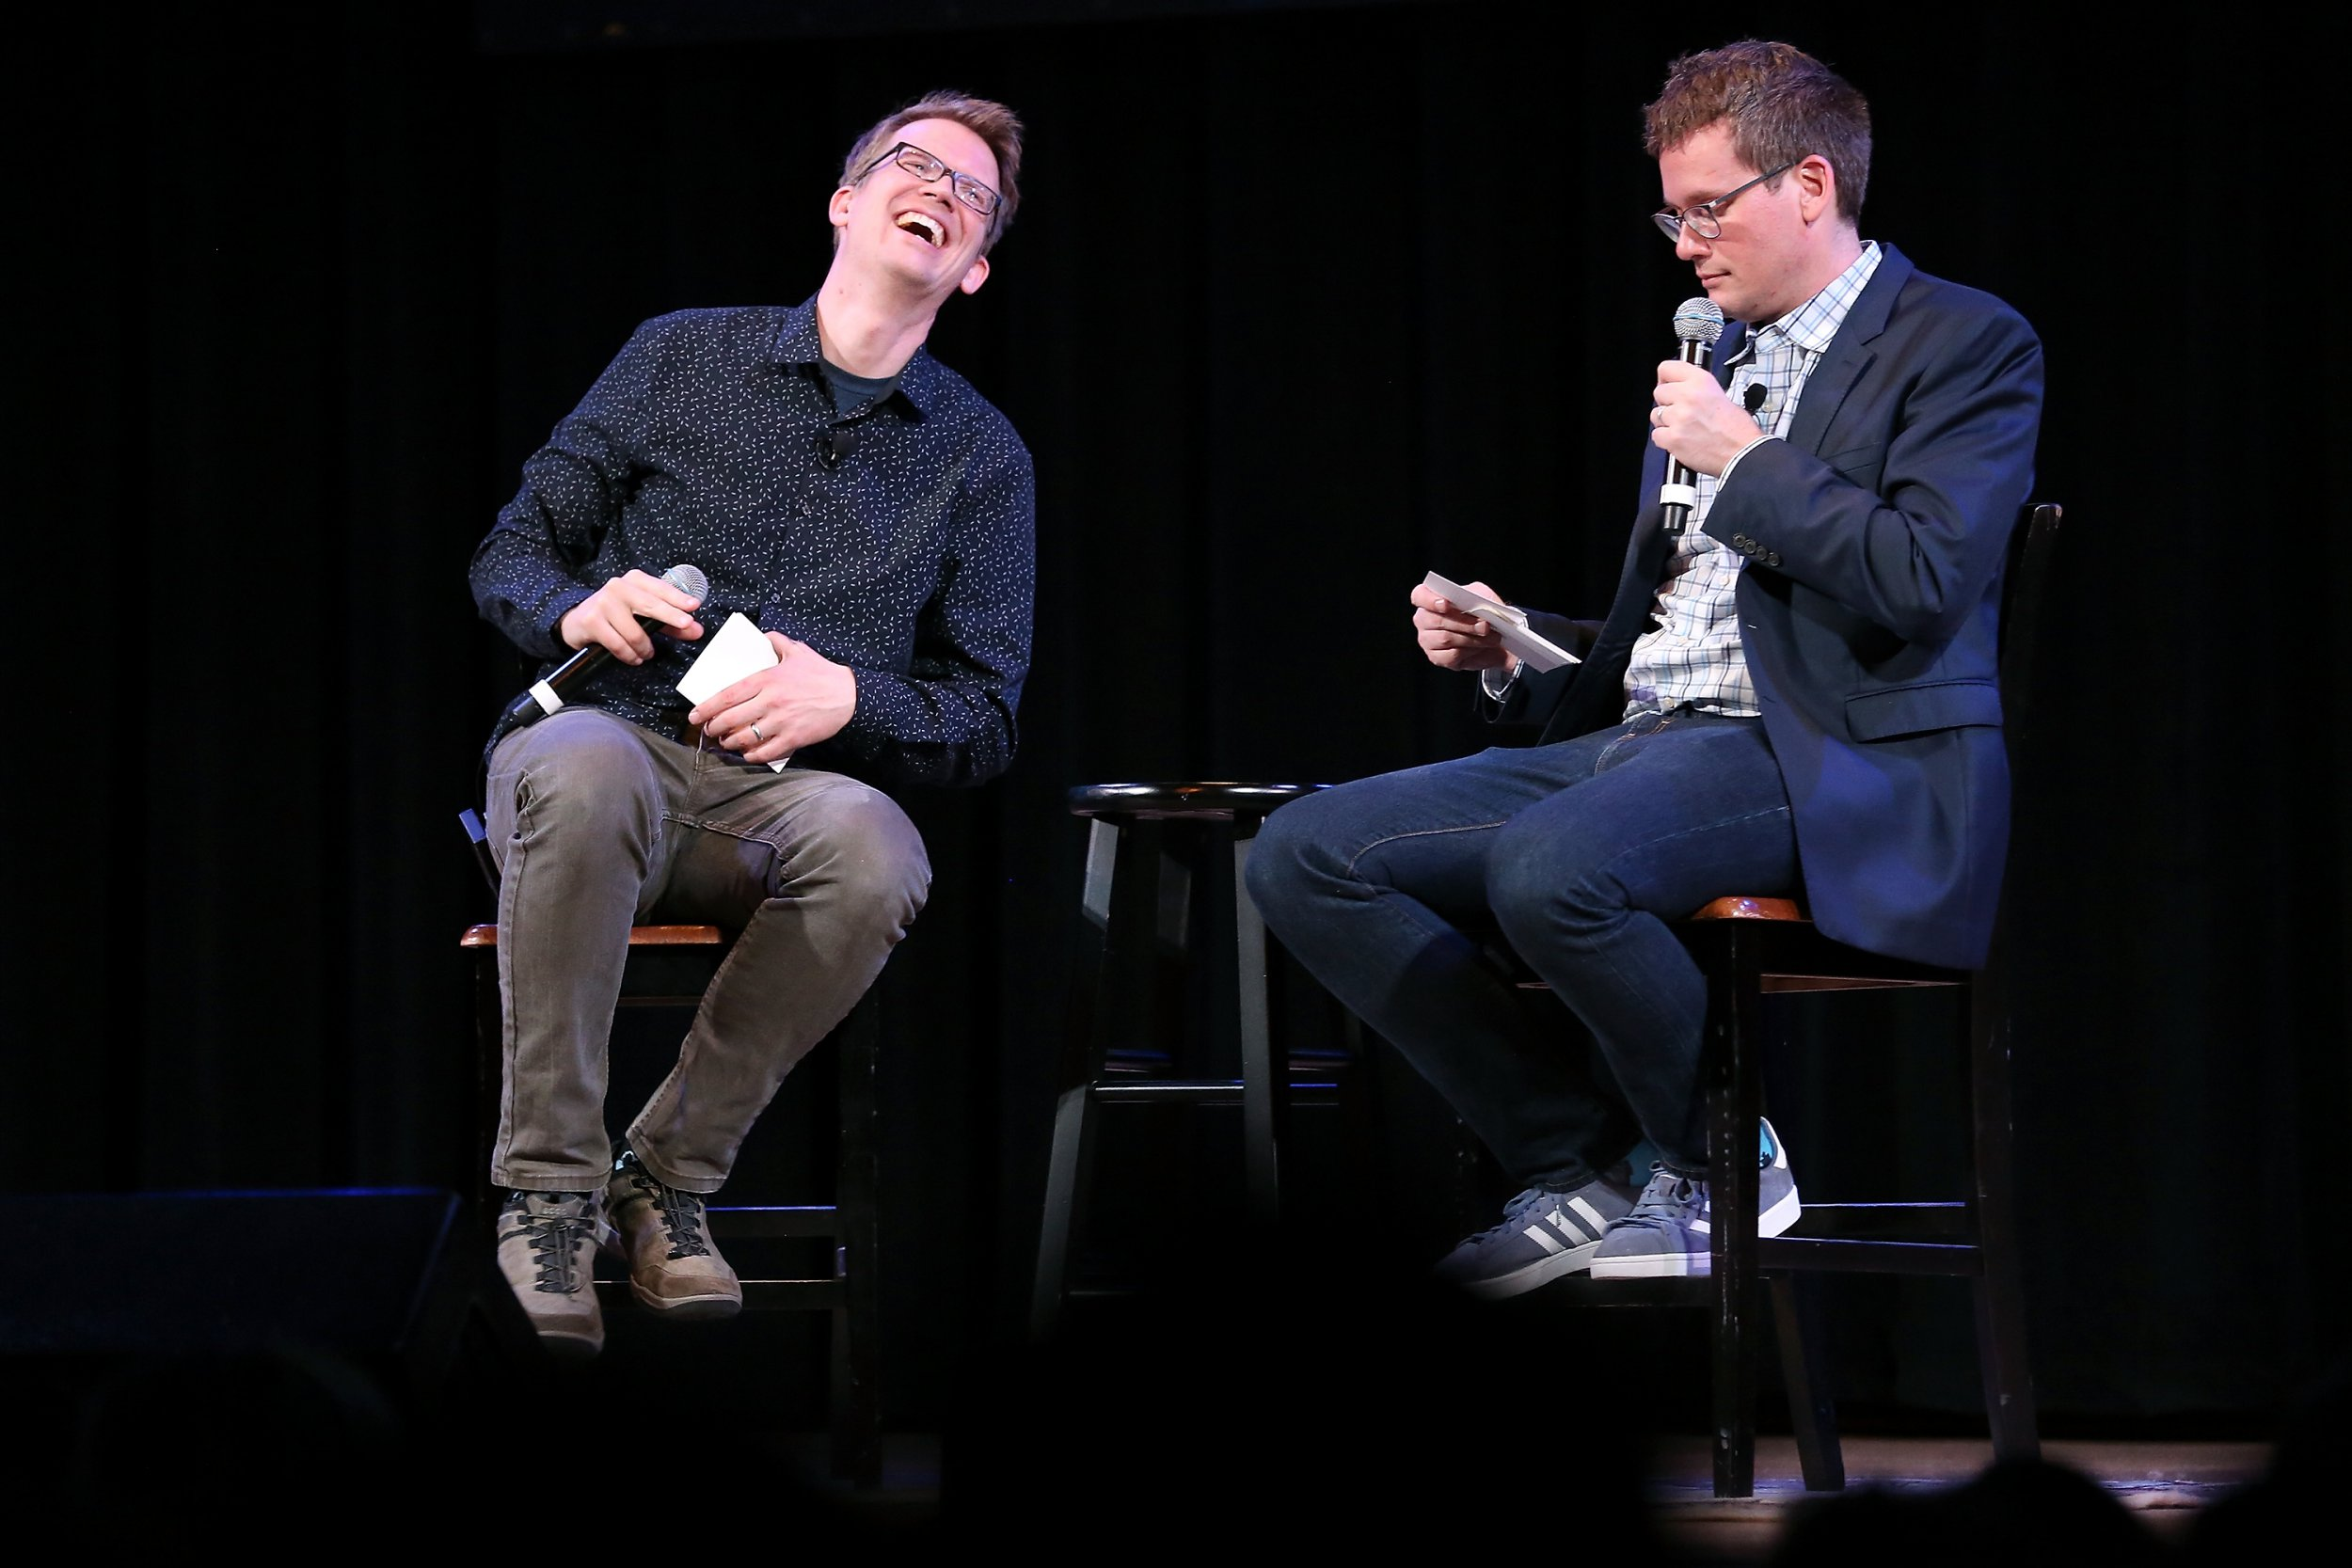 """NEW YORK, NY - SEPTEMBER 25: YouTube personality and author Hank Green (L) speaks on stage with his brother, fellow YouTube personality and author John Green, to discuss his new book """"An Absolutely Remarkable Thing"""" at The Town Hall on September 25, 2018 in New York City. (Photo by Monica Schipper/Getty Images)"""